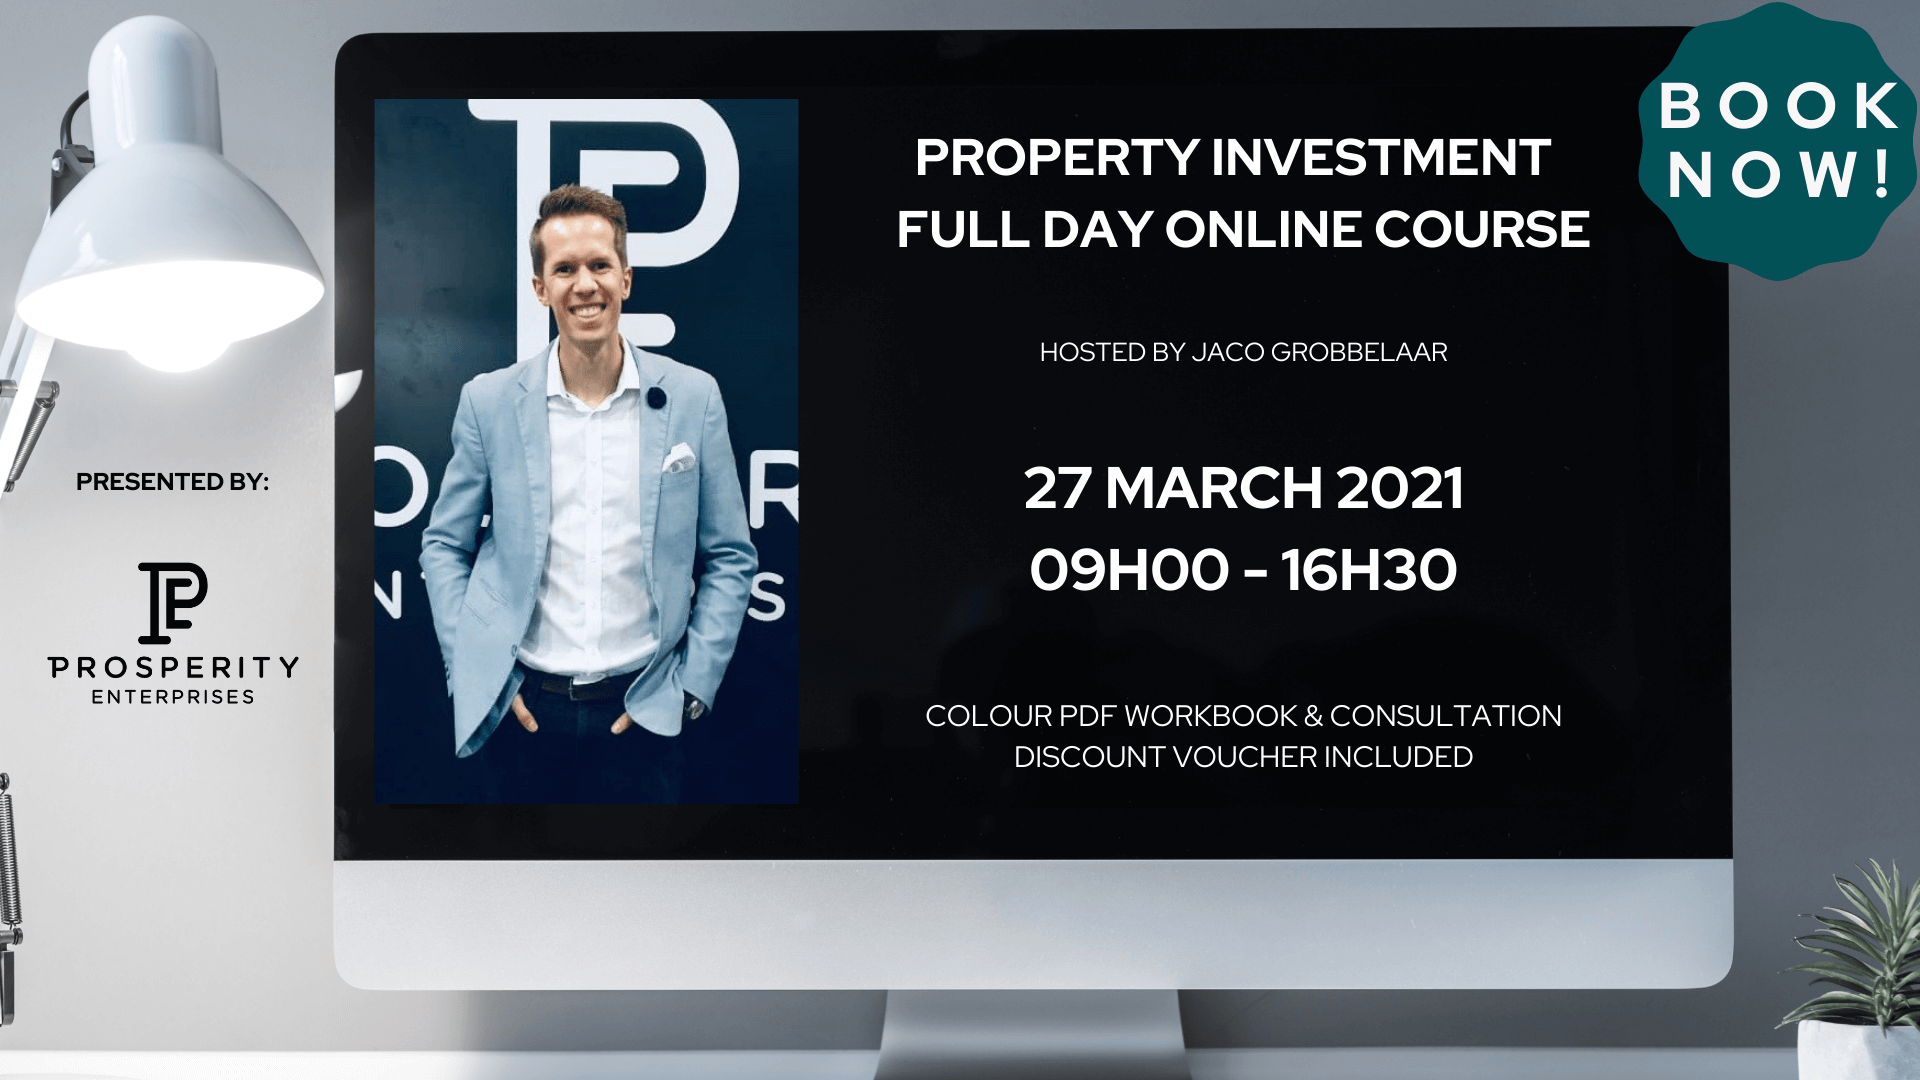 property-investment-webinar-full-day-online-course-03272021